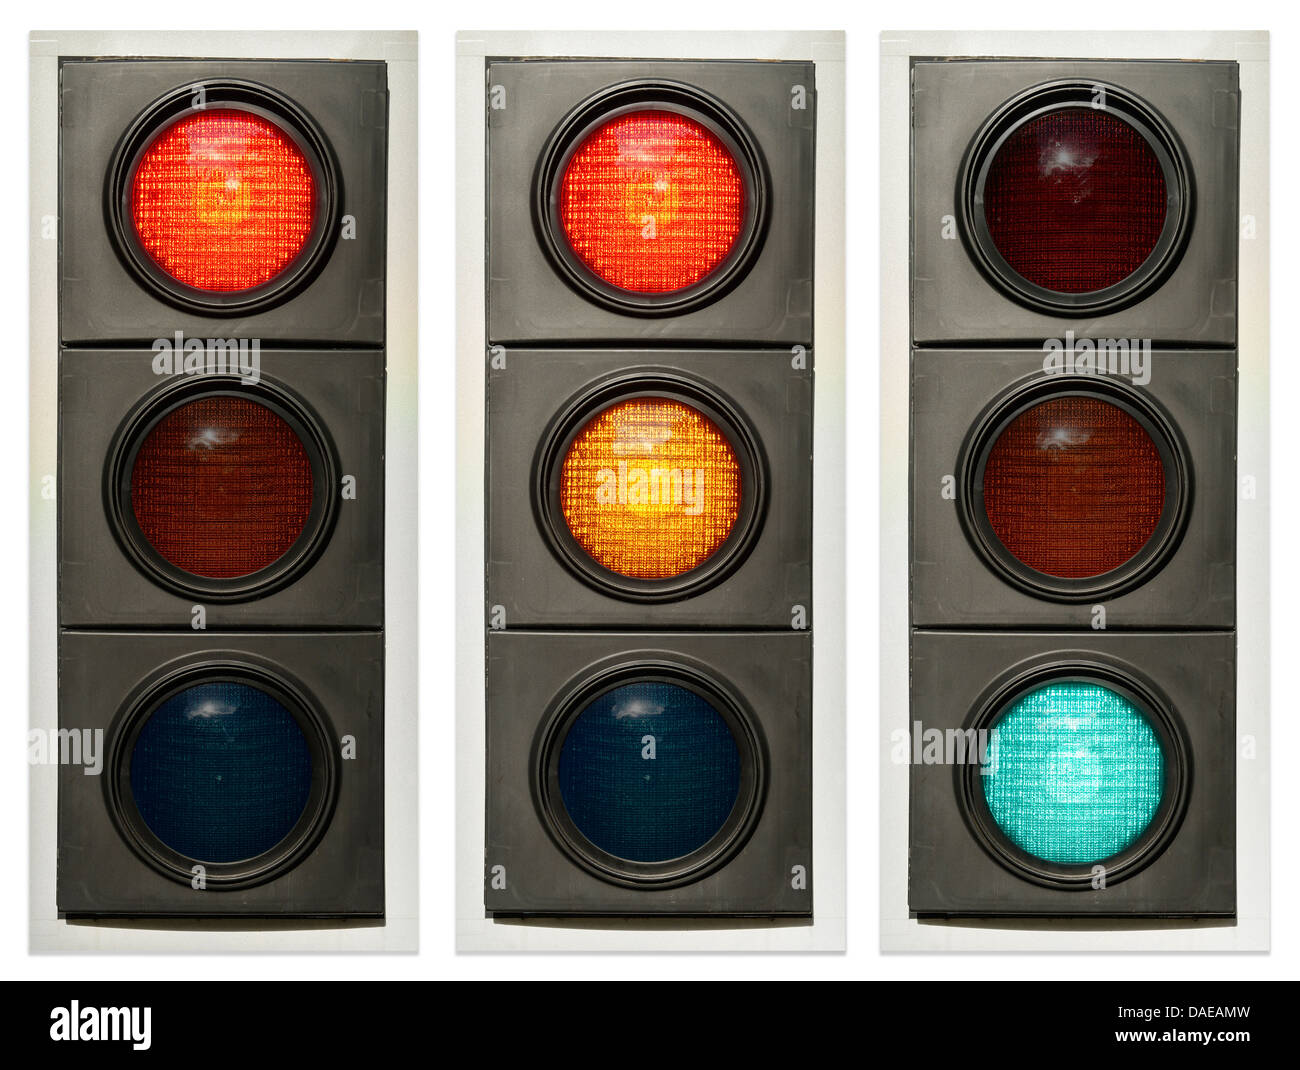 Traffic light sequence - Stock Image